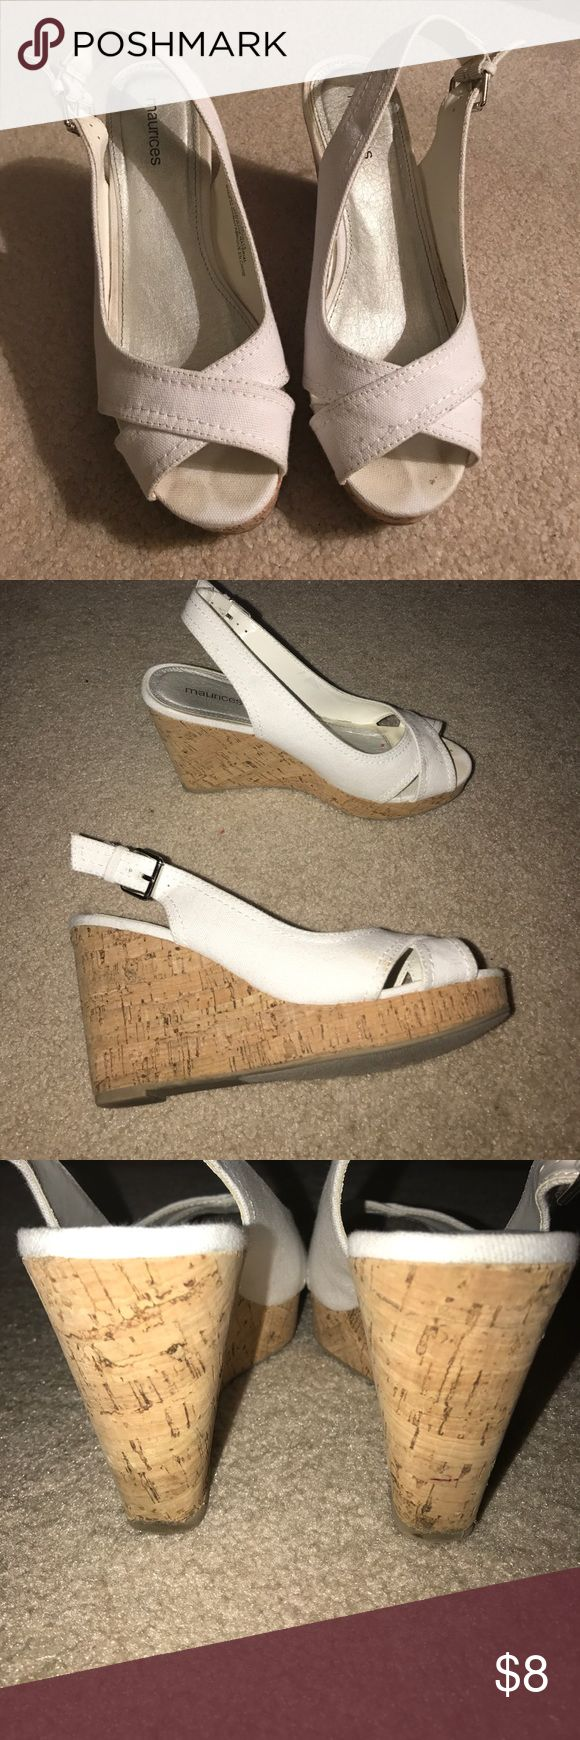 White wedges Maurice's white wedges size 8. The cork on the wedge has some wrinkles in them, they came from the store that way and it's hardly noticeable. There is one spot on the side of one of the shoes that has a small light spot (see pic). These have only been worn a couple time and are still in good shape! Maurices Shoes Wedges